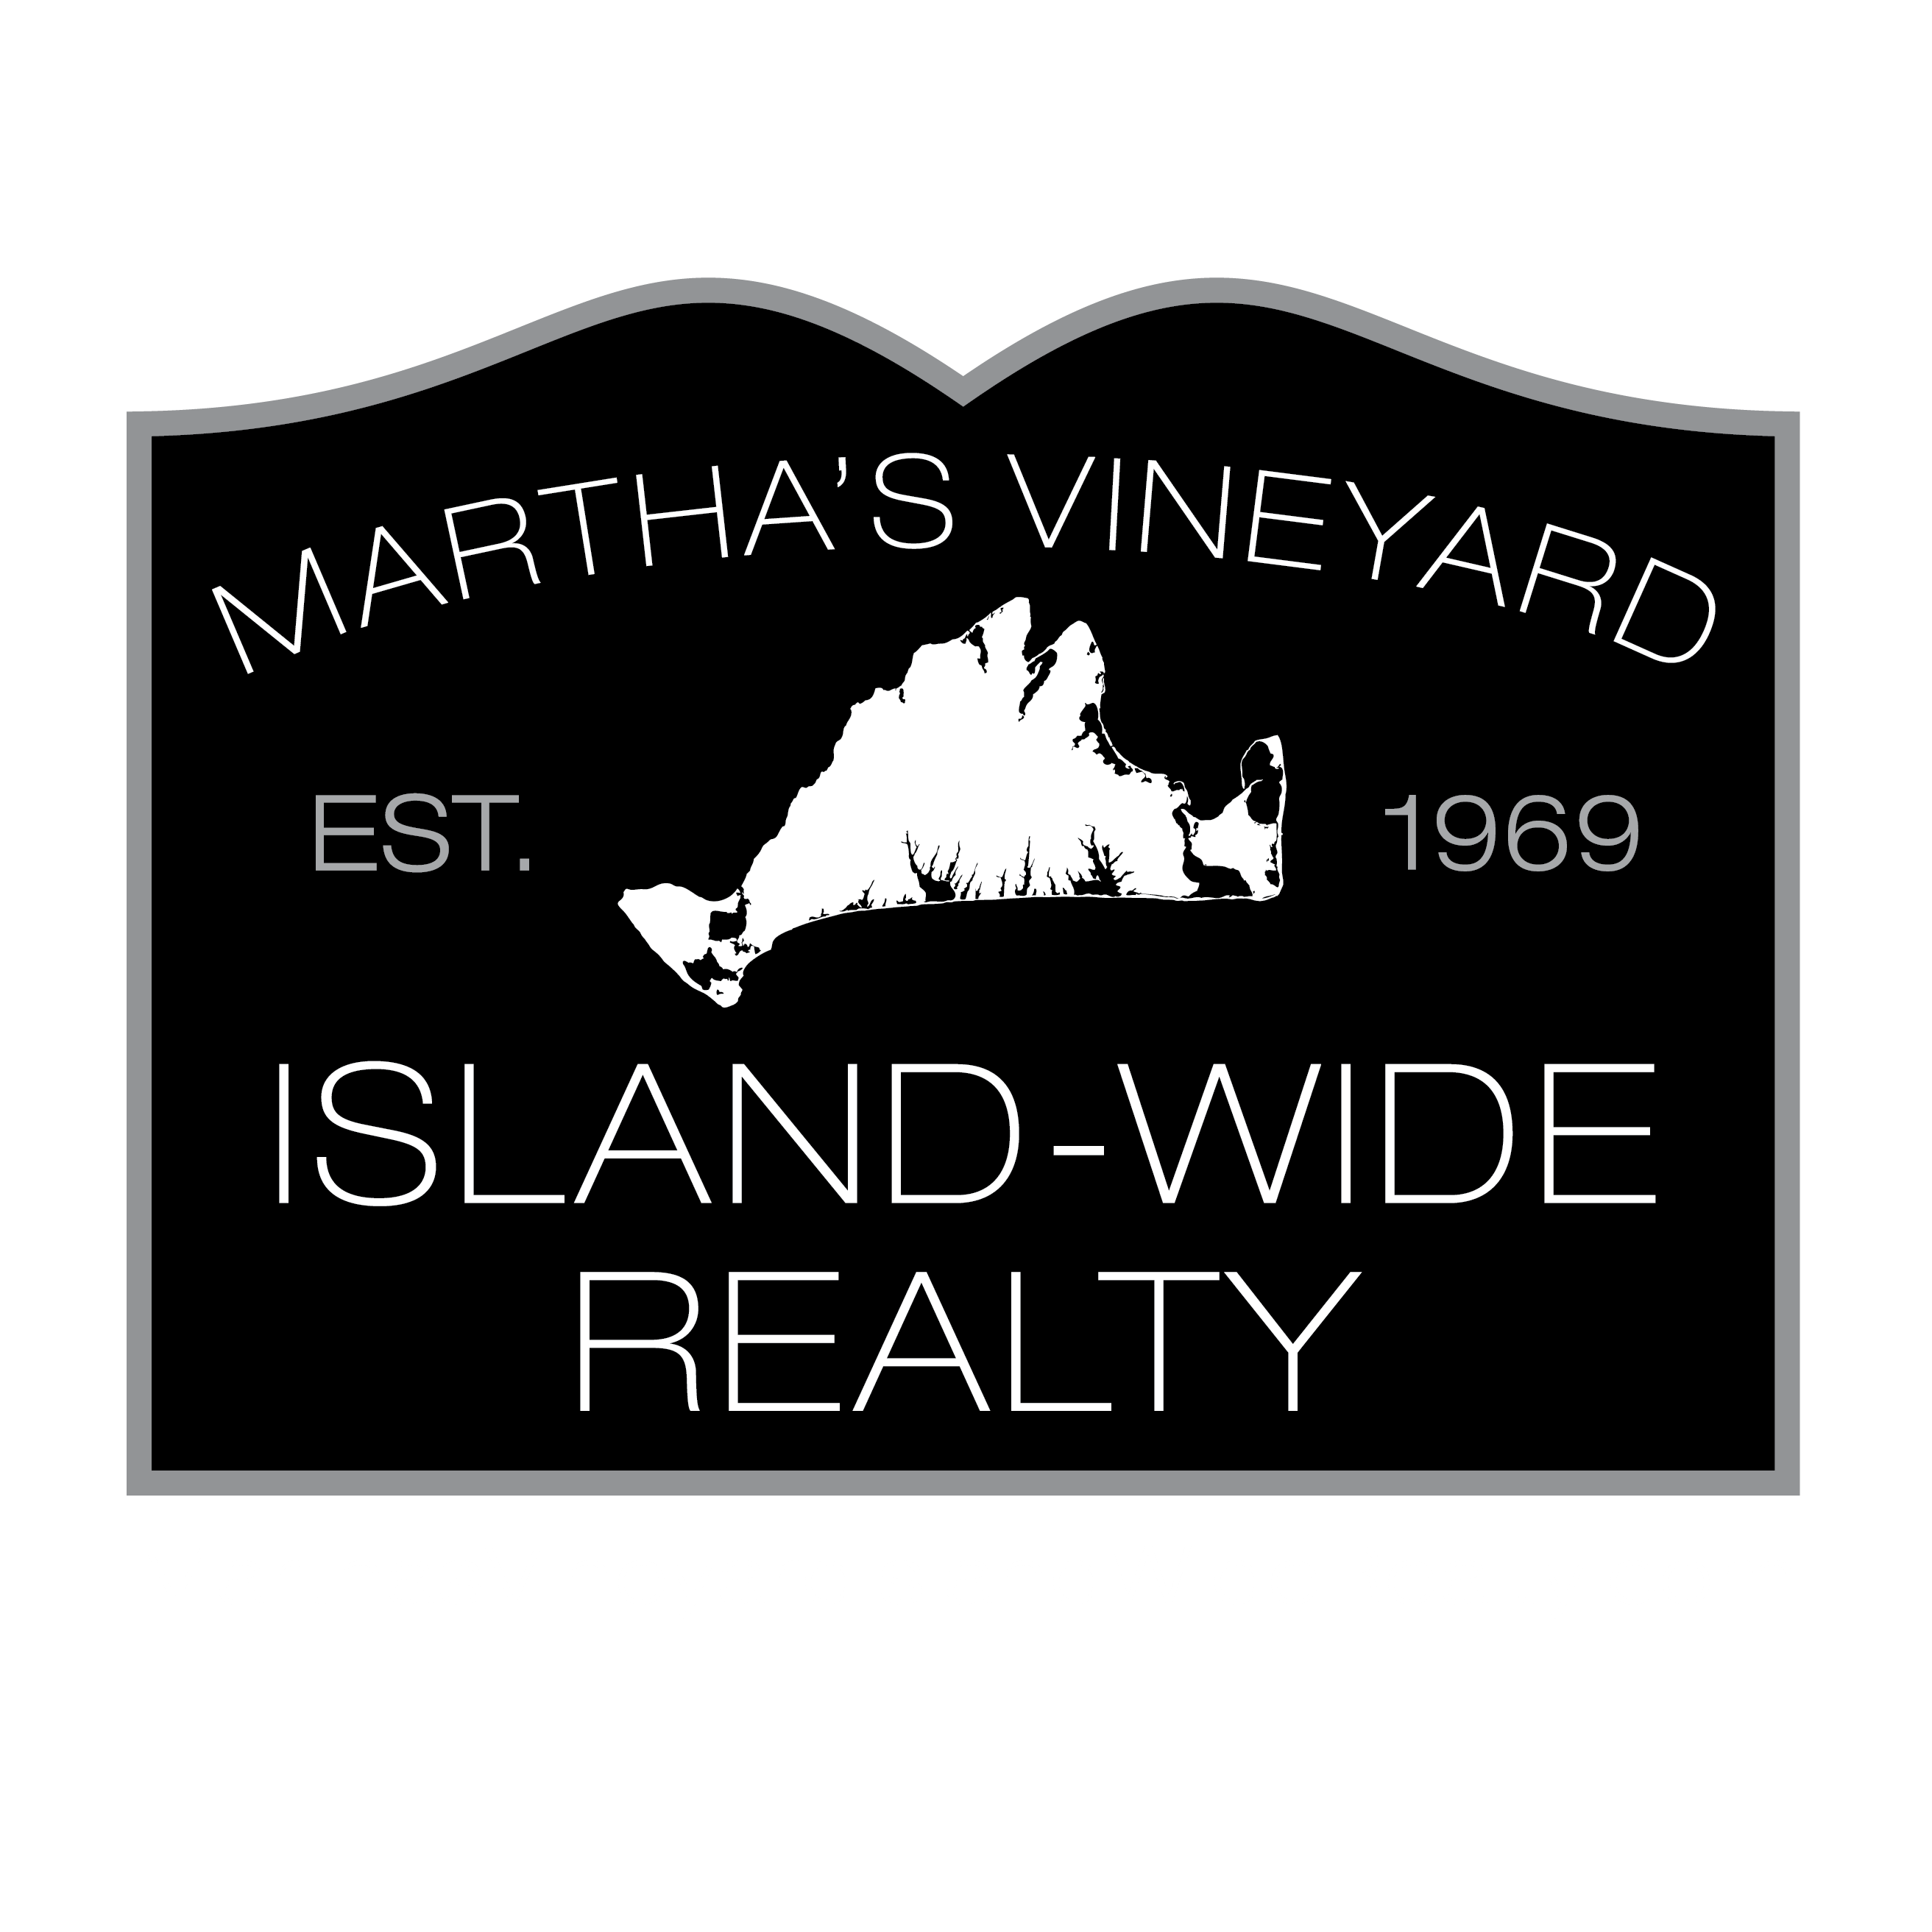 Martha's Vineyard Island Wide Realty